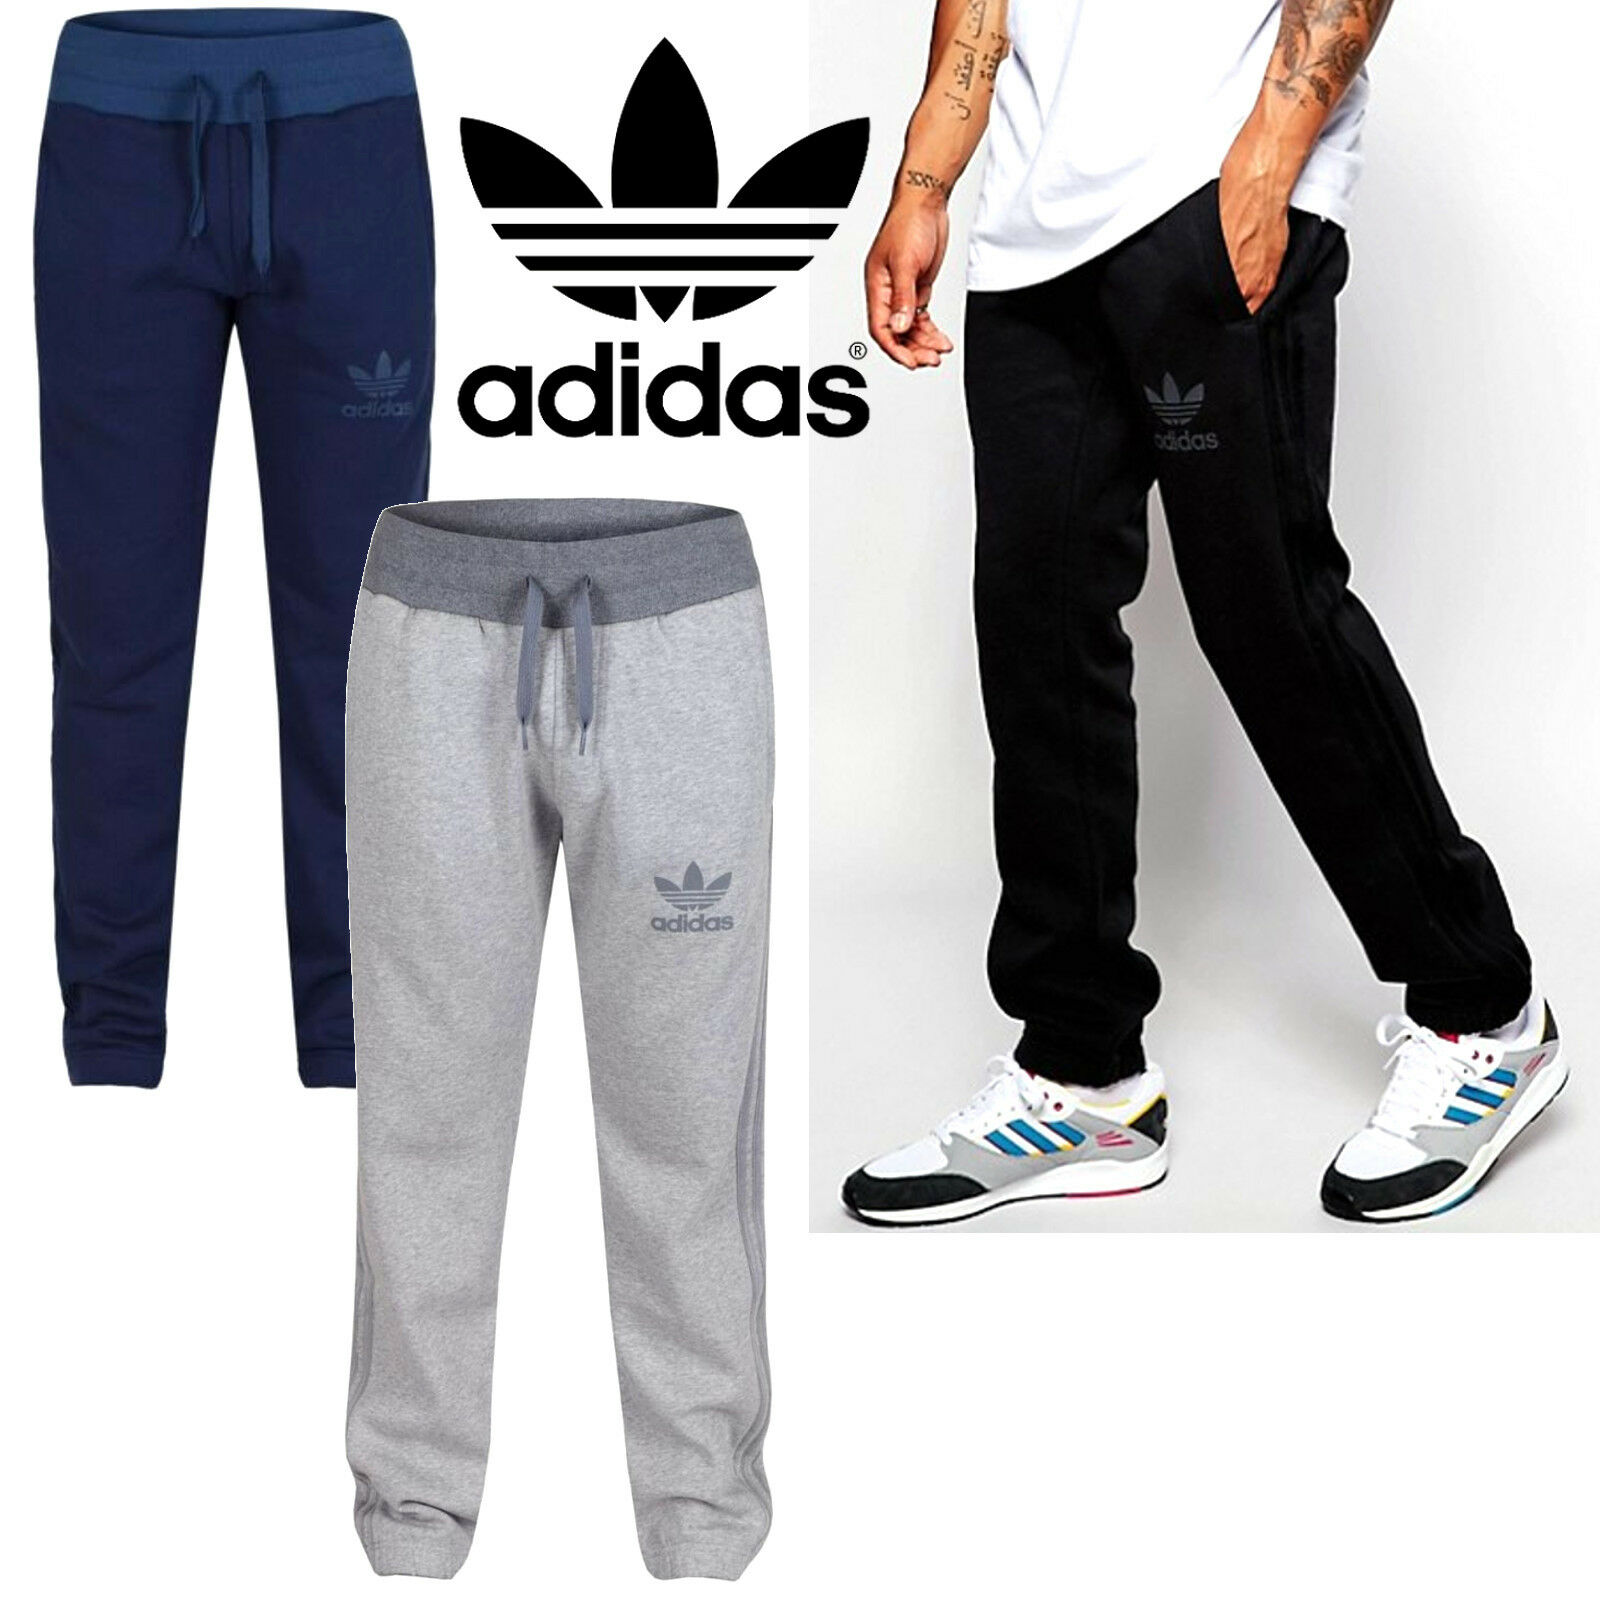 Details about adidas Originals SPO Trefoil Sweatpants Mens Tracksuit Trousers Sports Bottoms